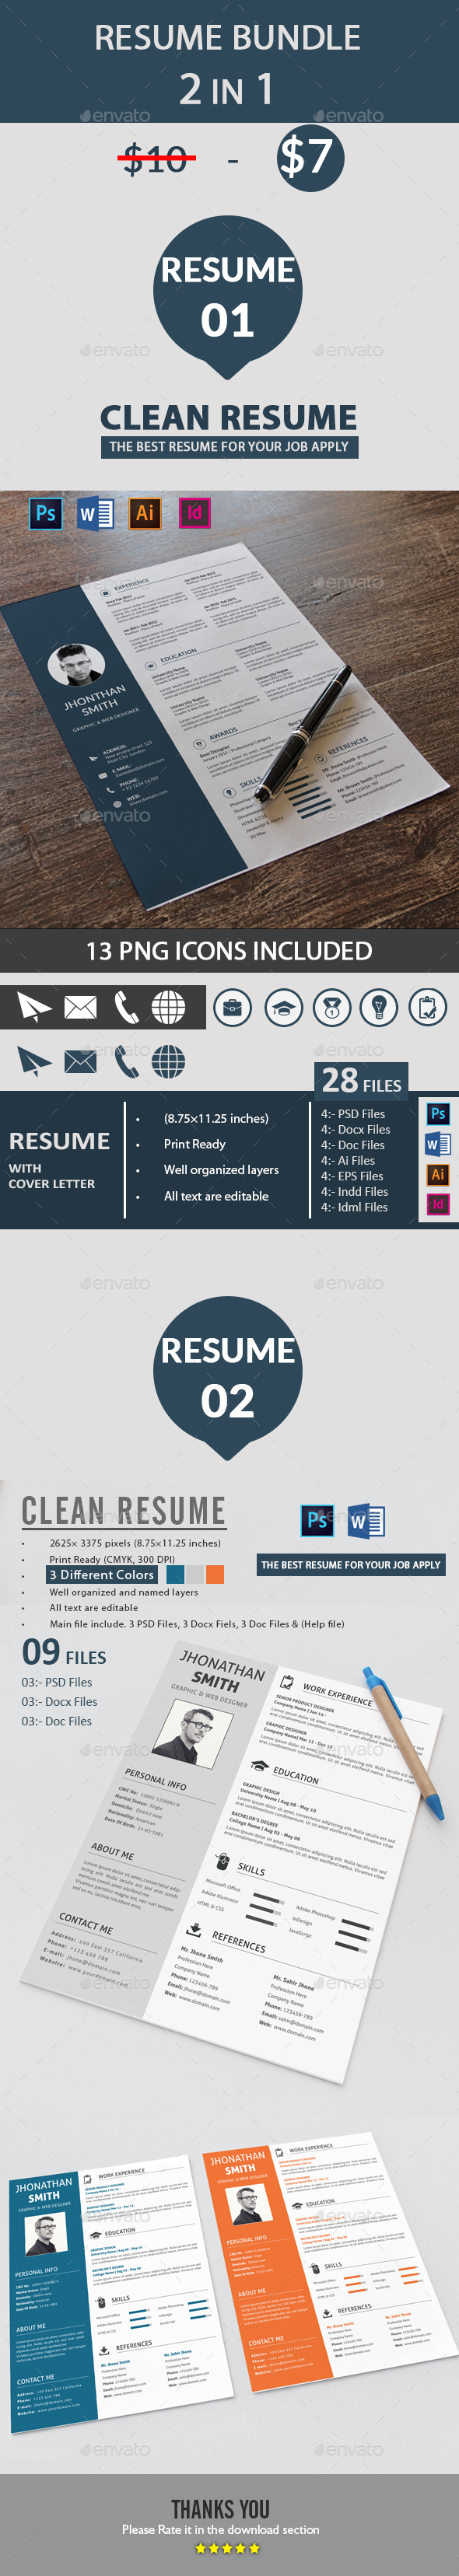 Resume Template PSD, InDesign INDD, AI Illustrator, MS Word | Resume ...